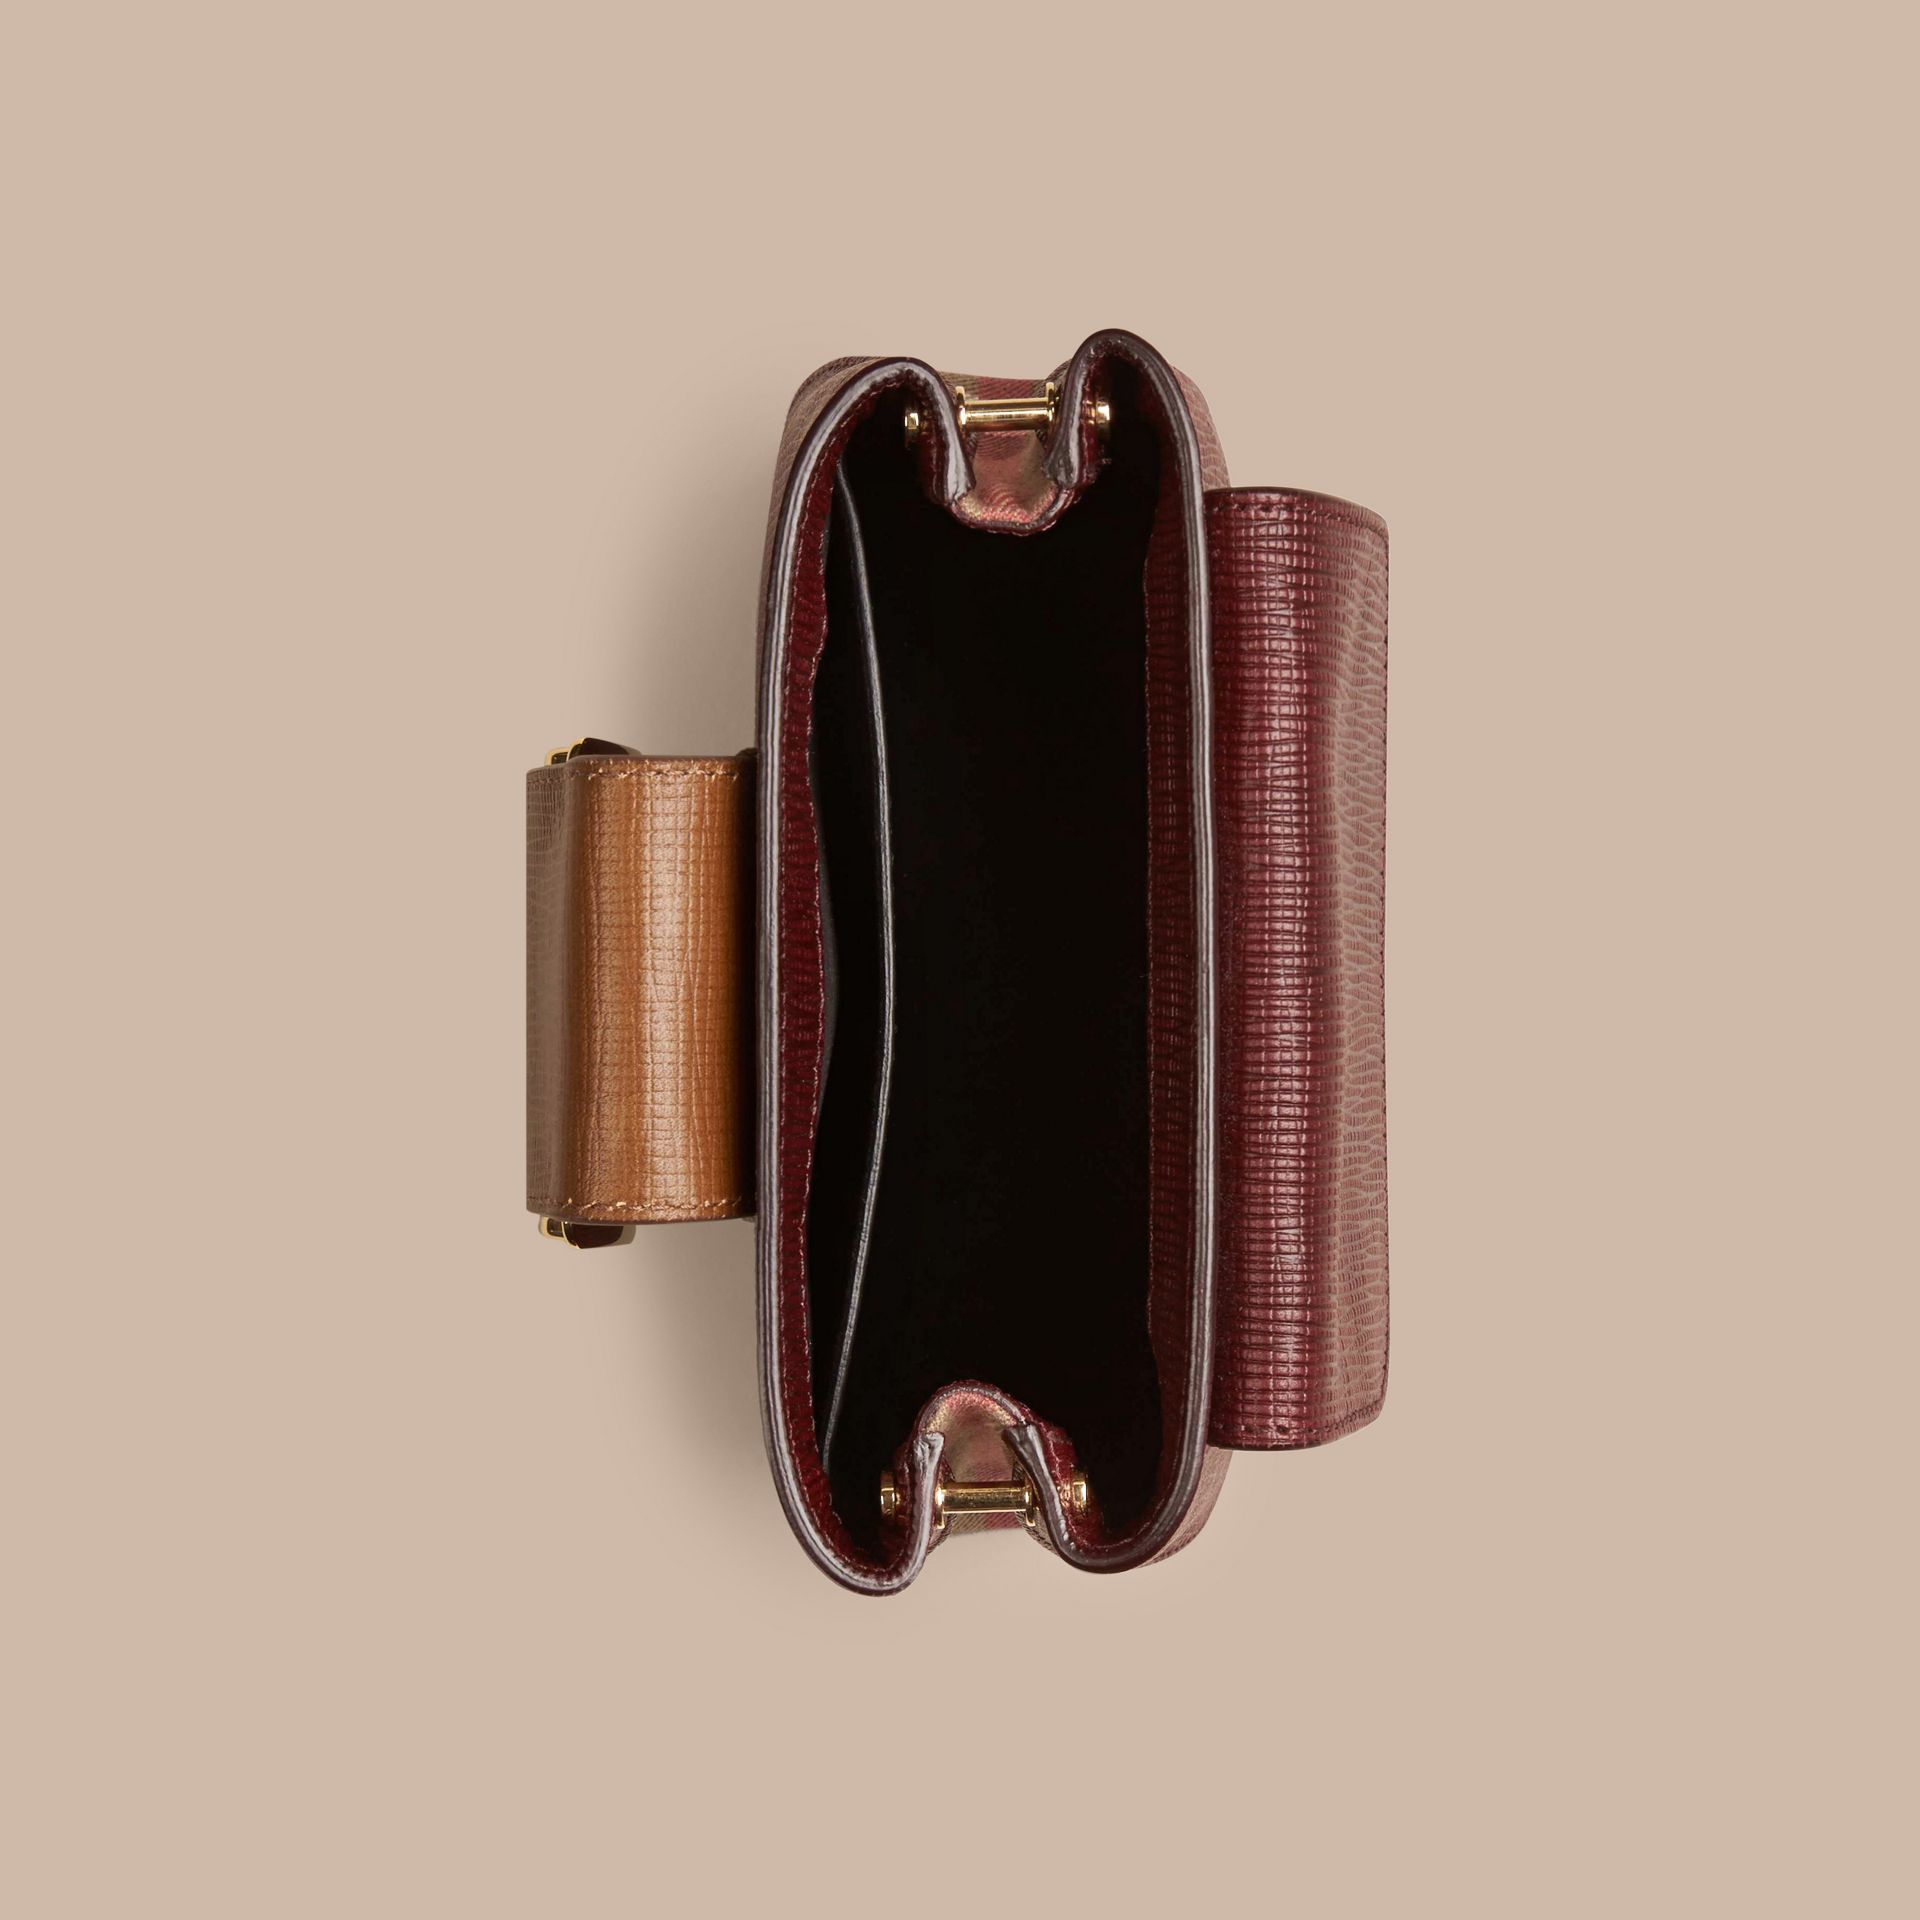 Burgundy The Small Square Buckle Bag in Leather and House Check Burgundy - gallery image 5